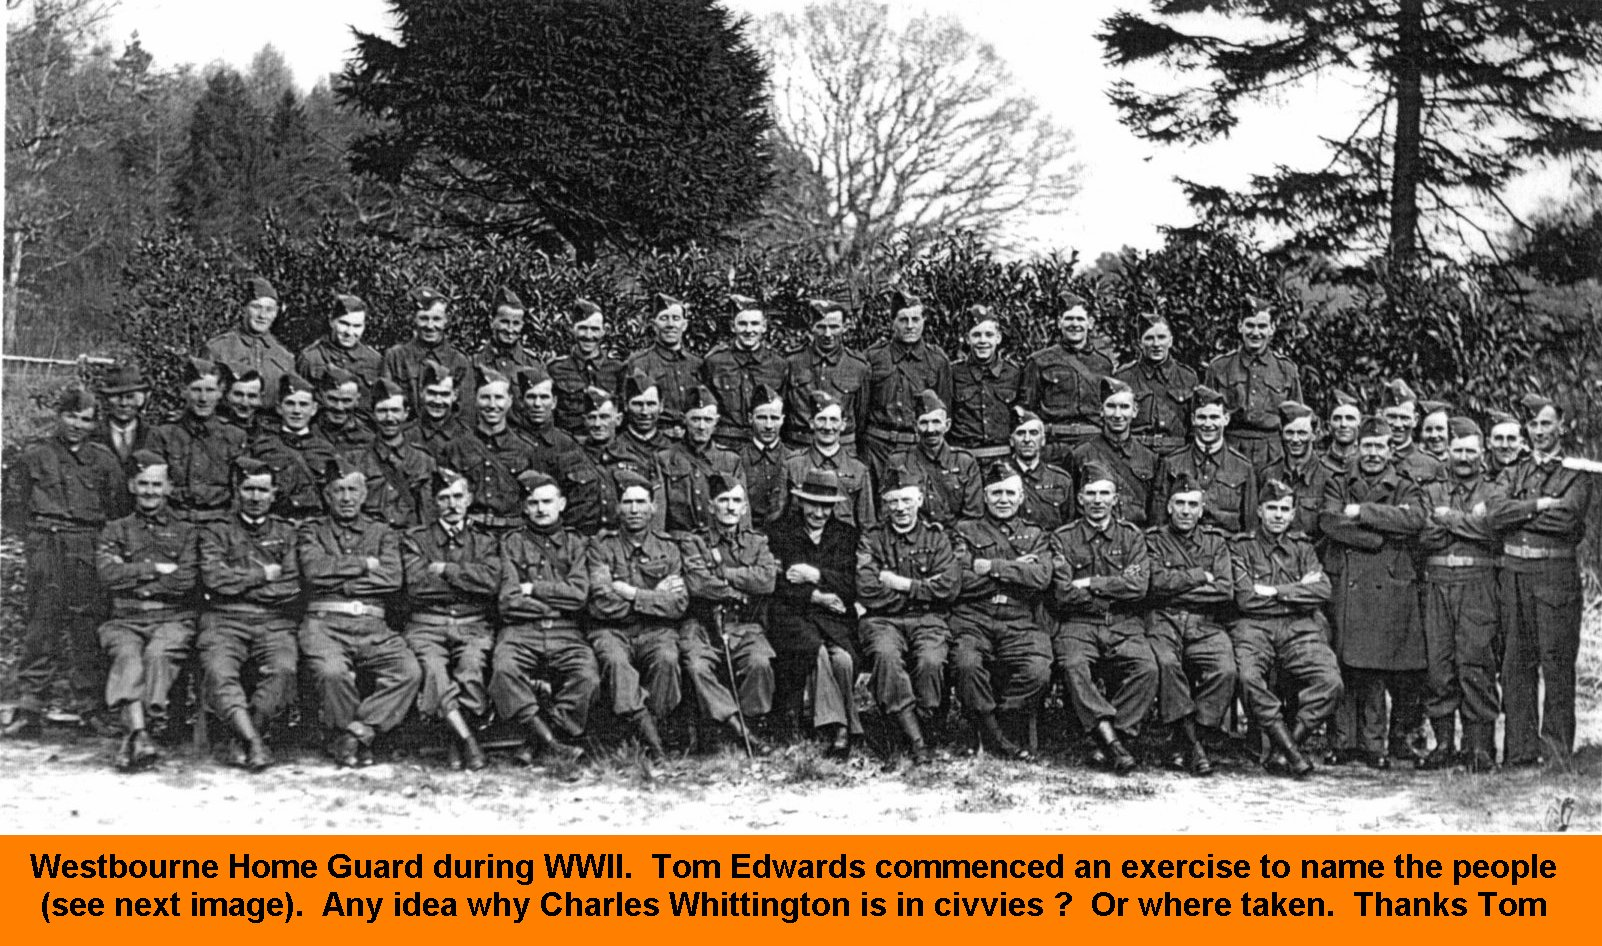 WESTBOURNE HISTORY PHOTO, WESTBOURNE HOME GUARD, WWII, CHARLES WHITTINGTON